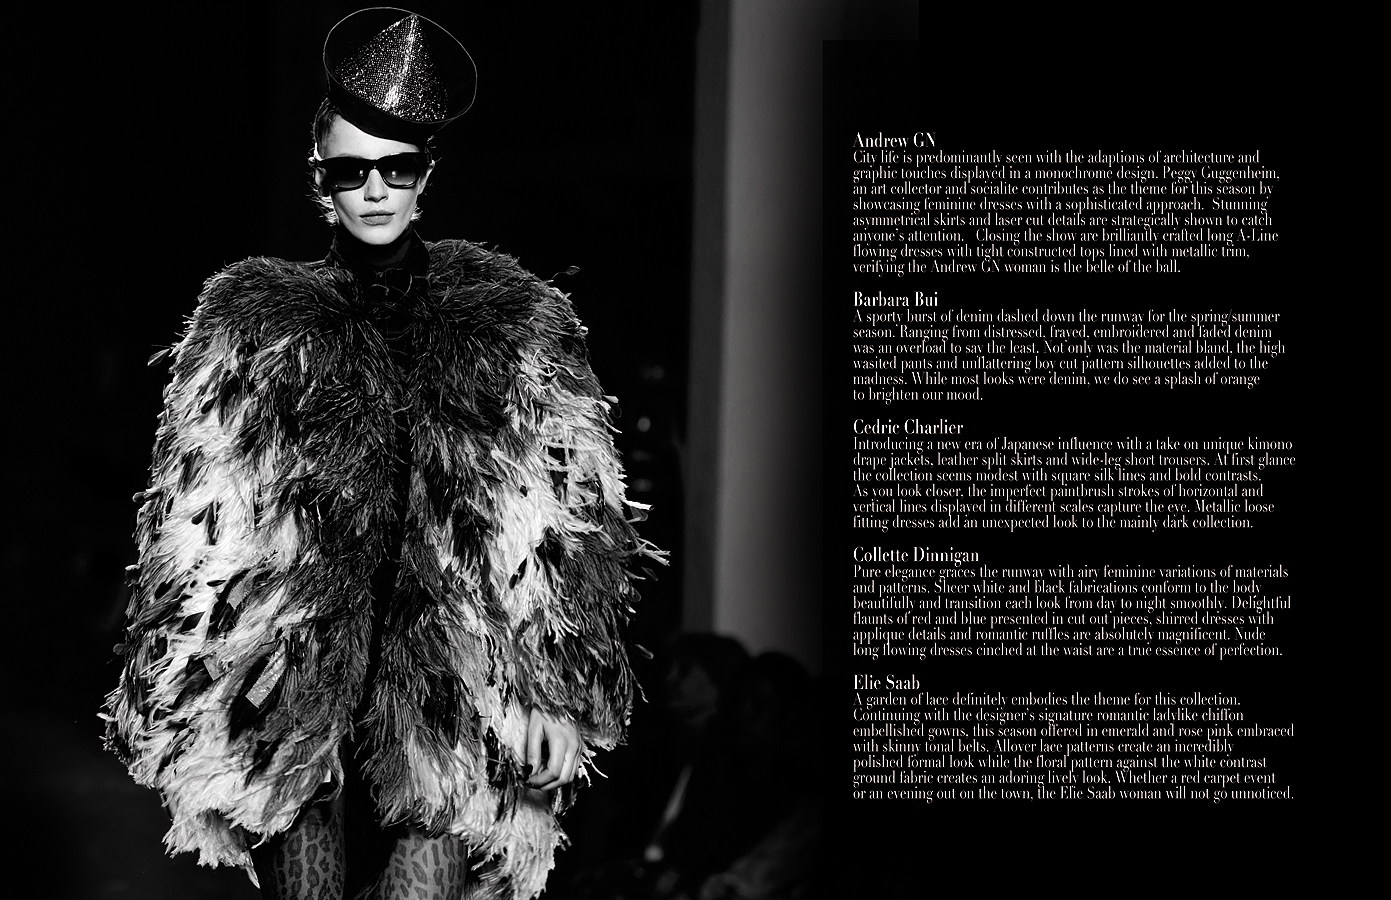 Runway France Magazine